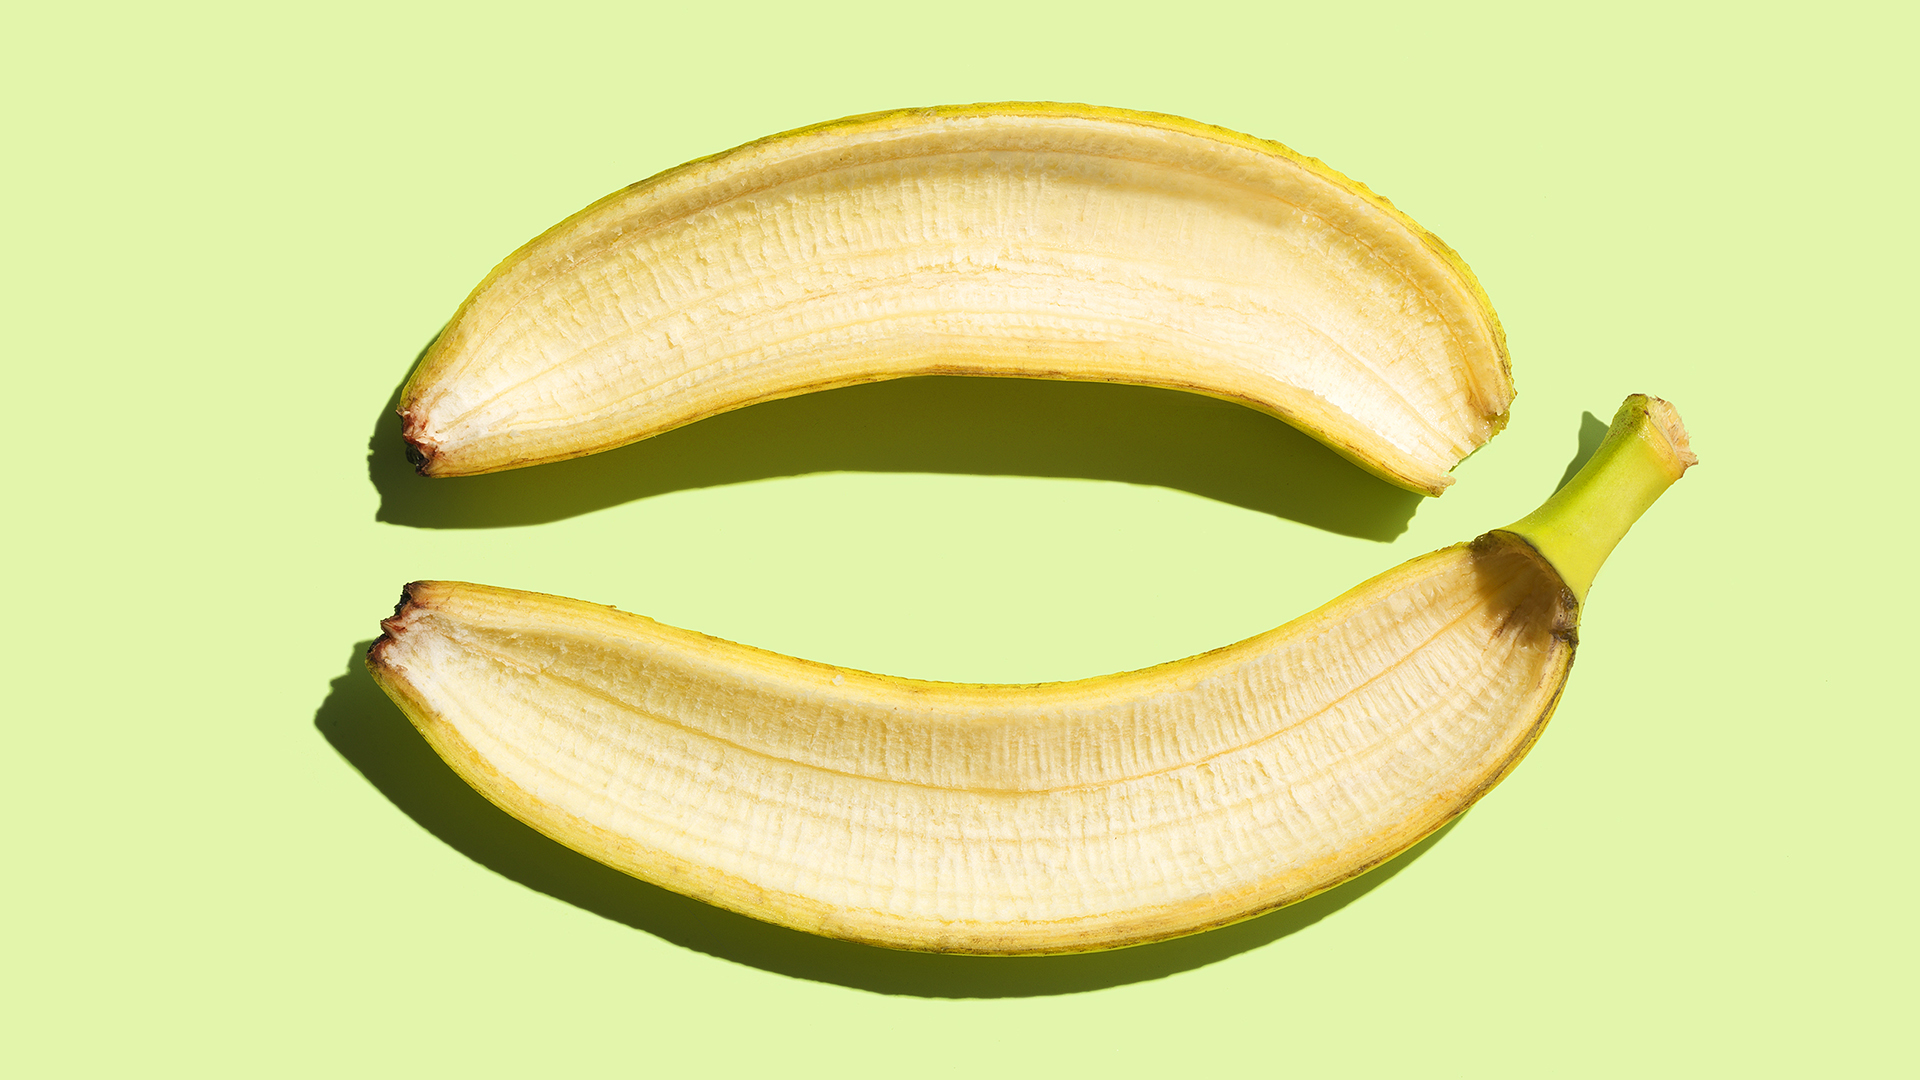 Uses for banana peels: Polish shoes, whiten teeth and more - TODAY.com